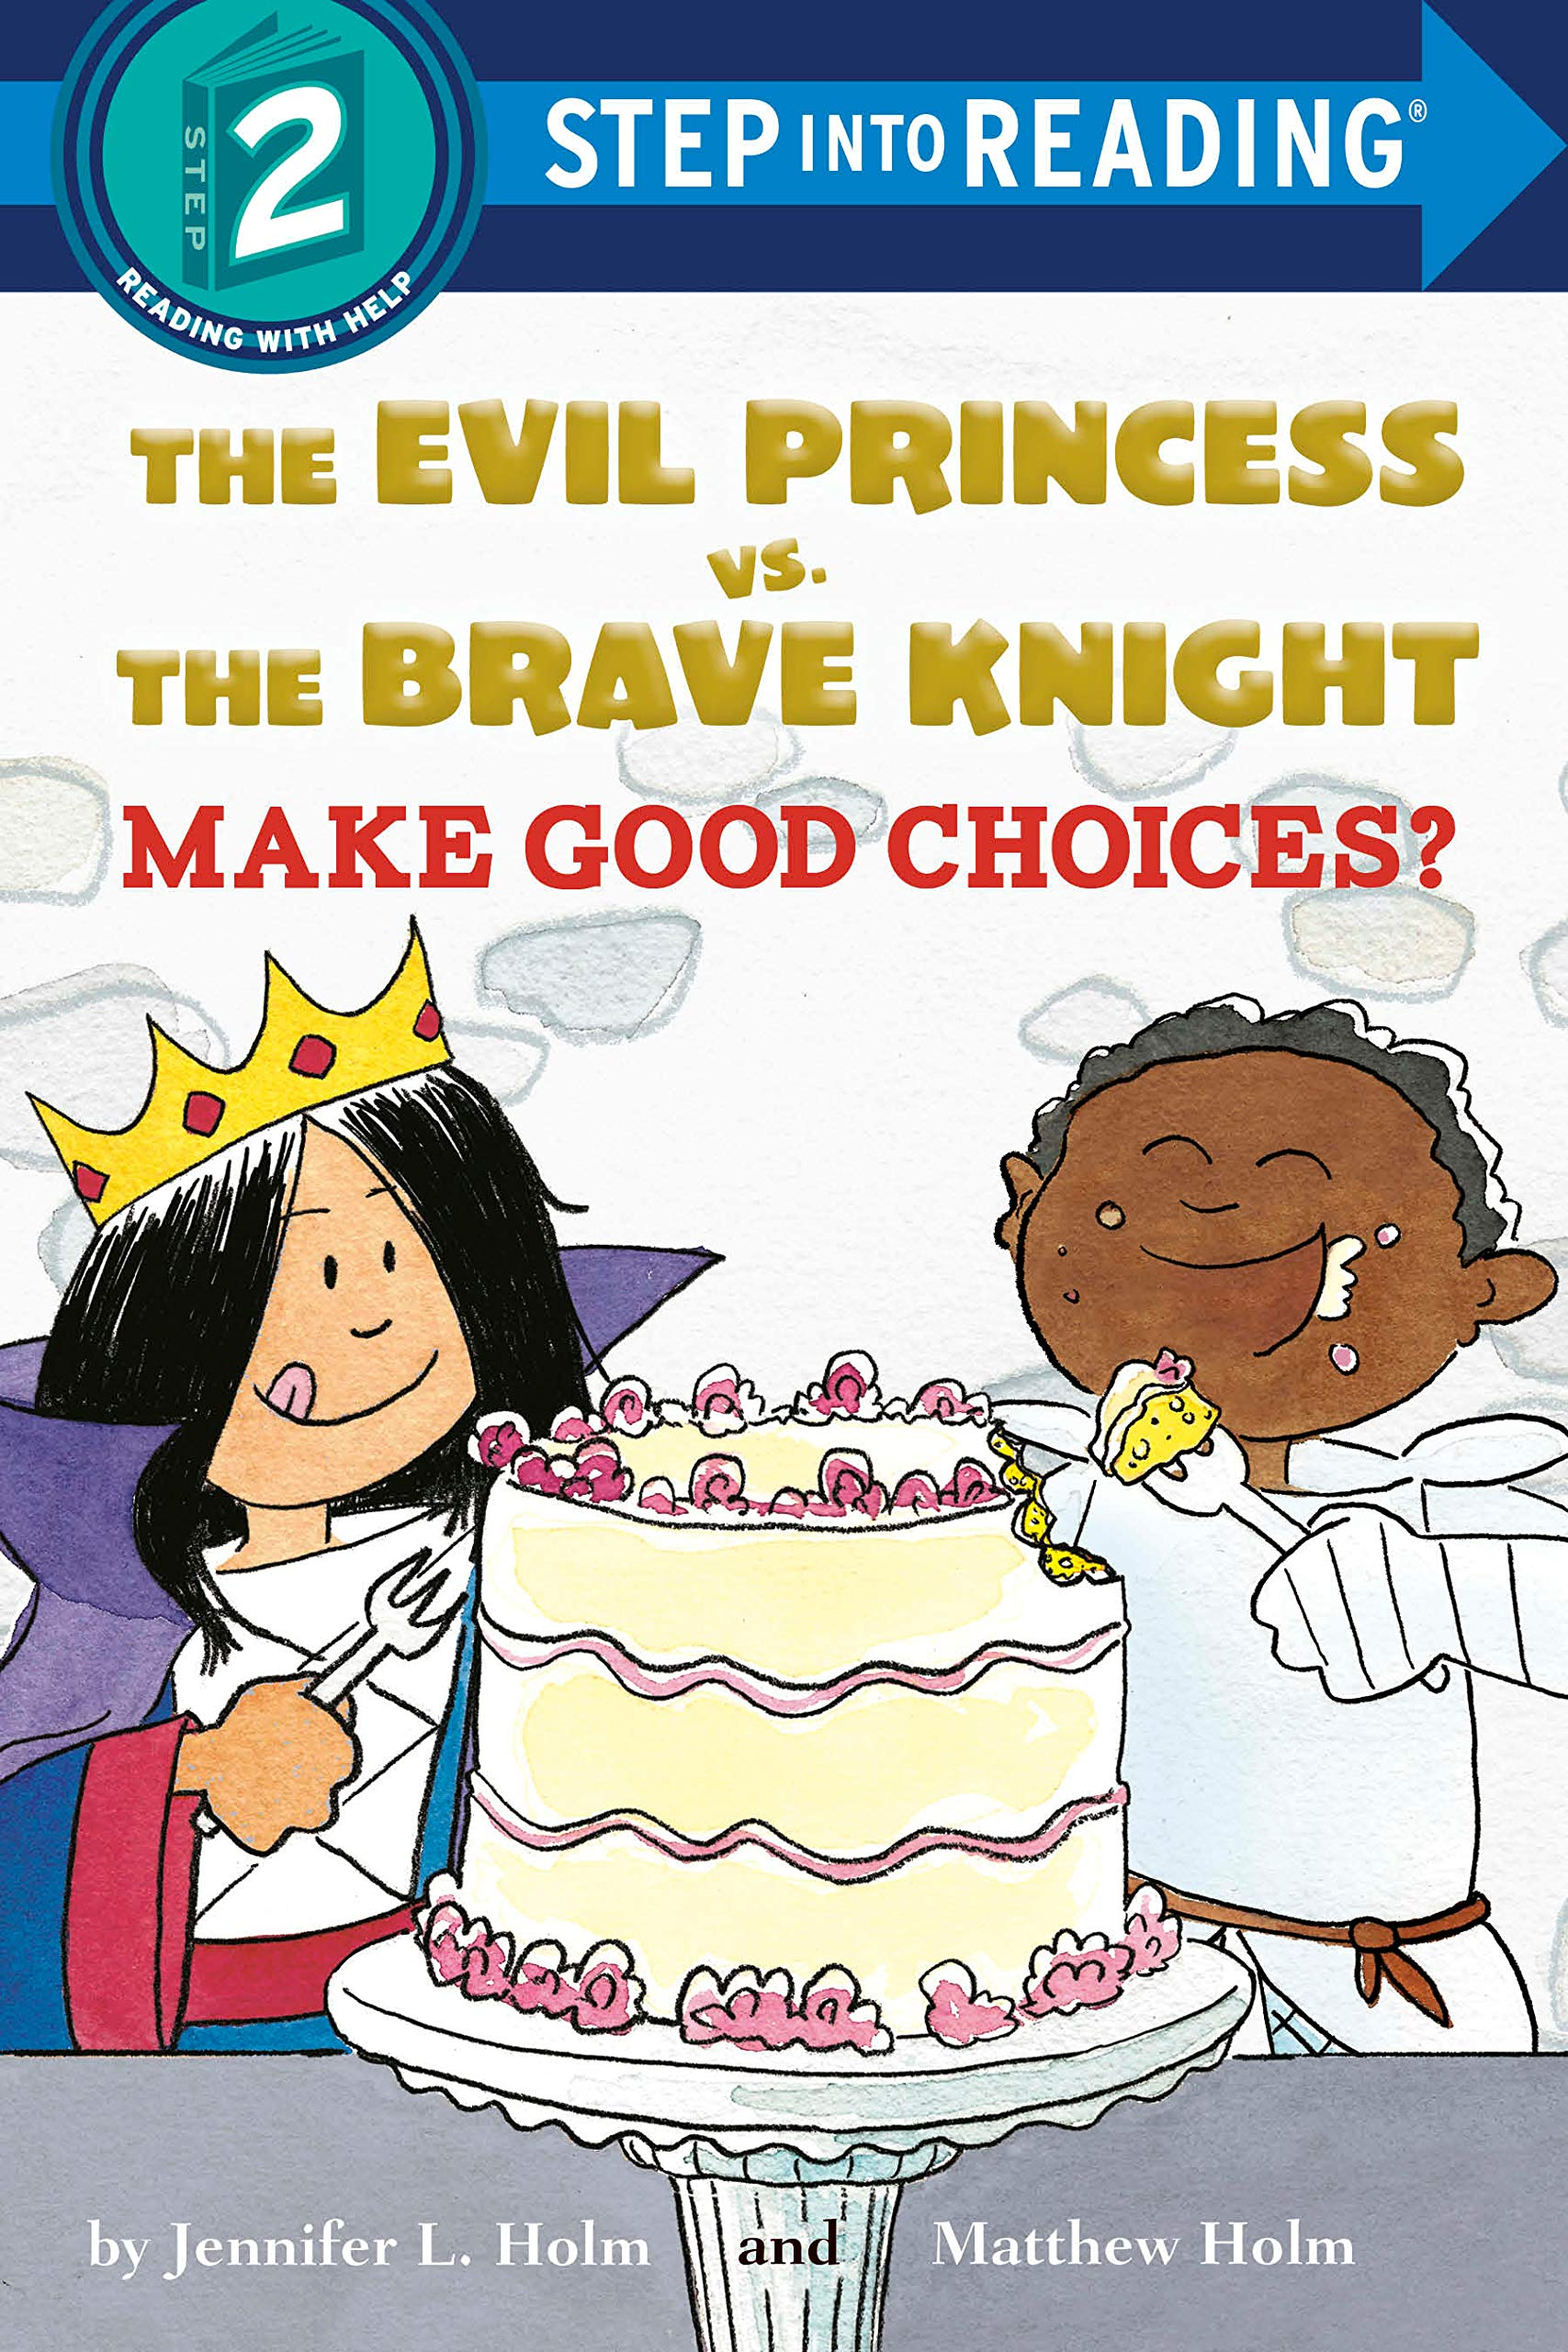 The Evil Princess Vs. the Brave Knight Make Good Choices?